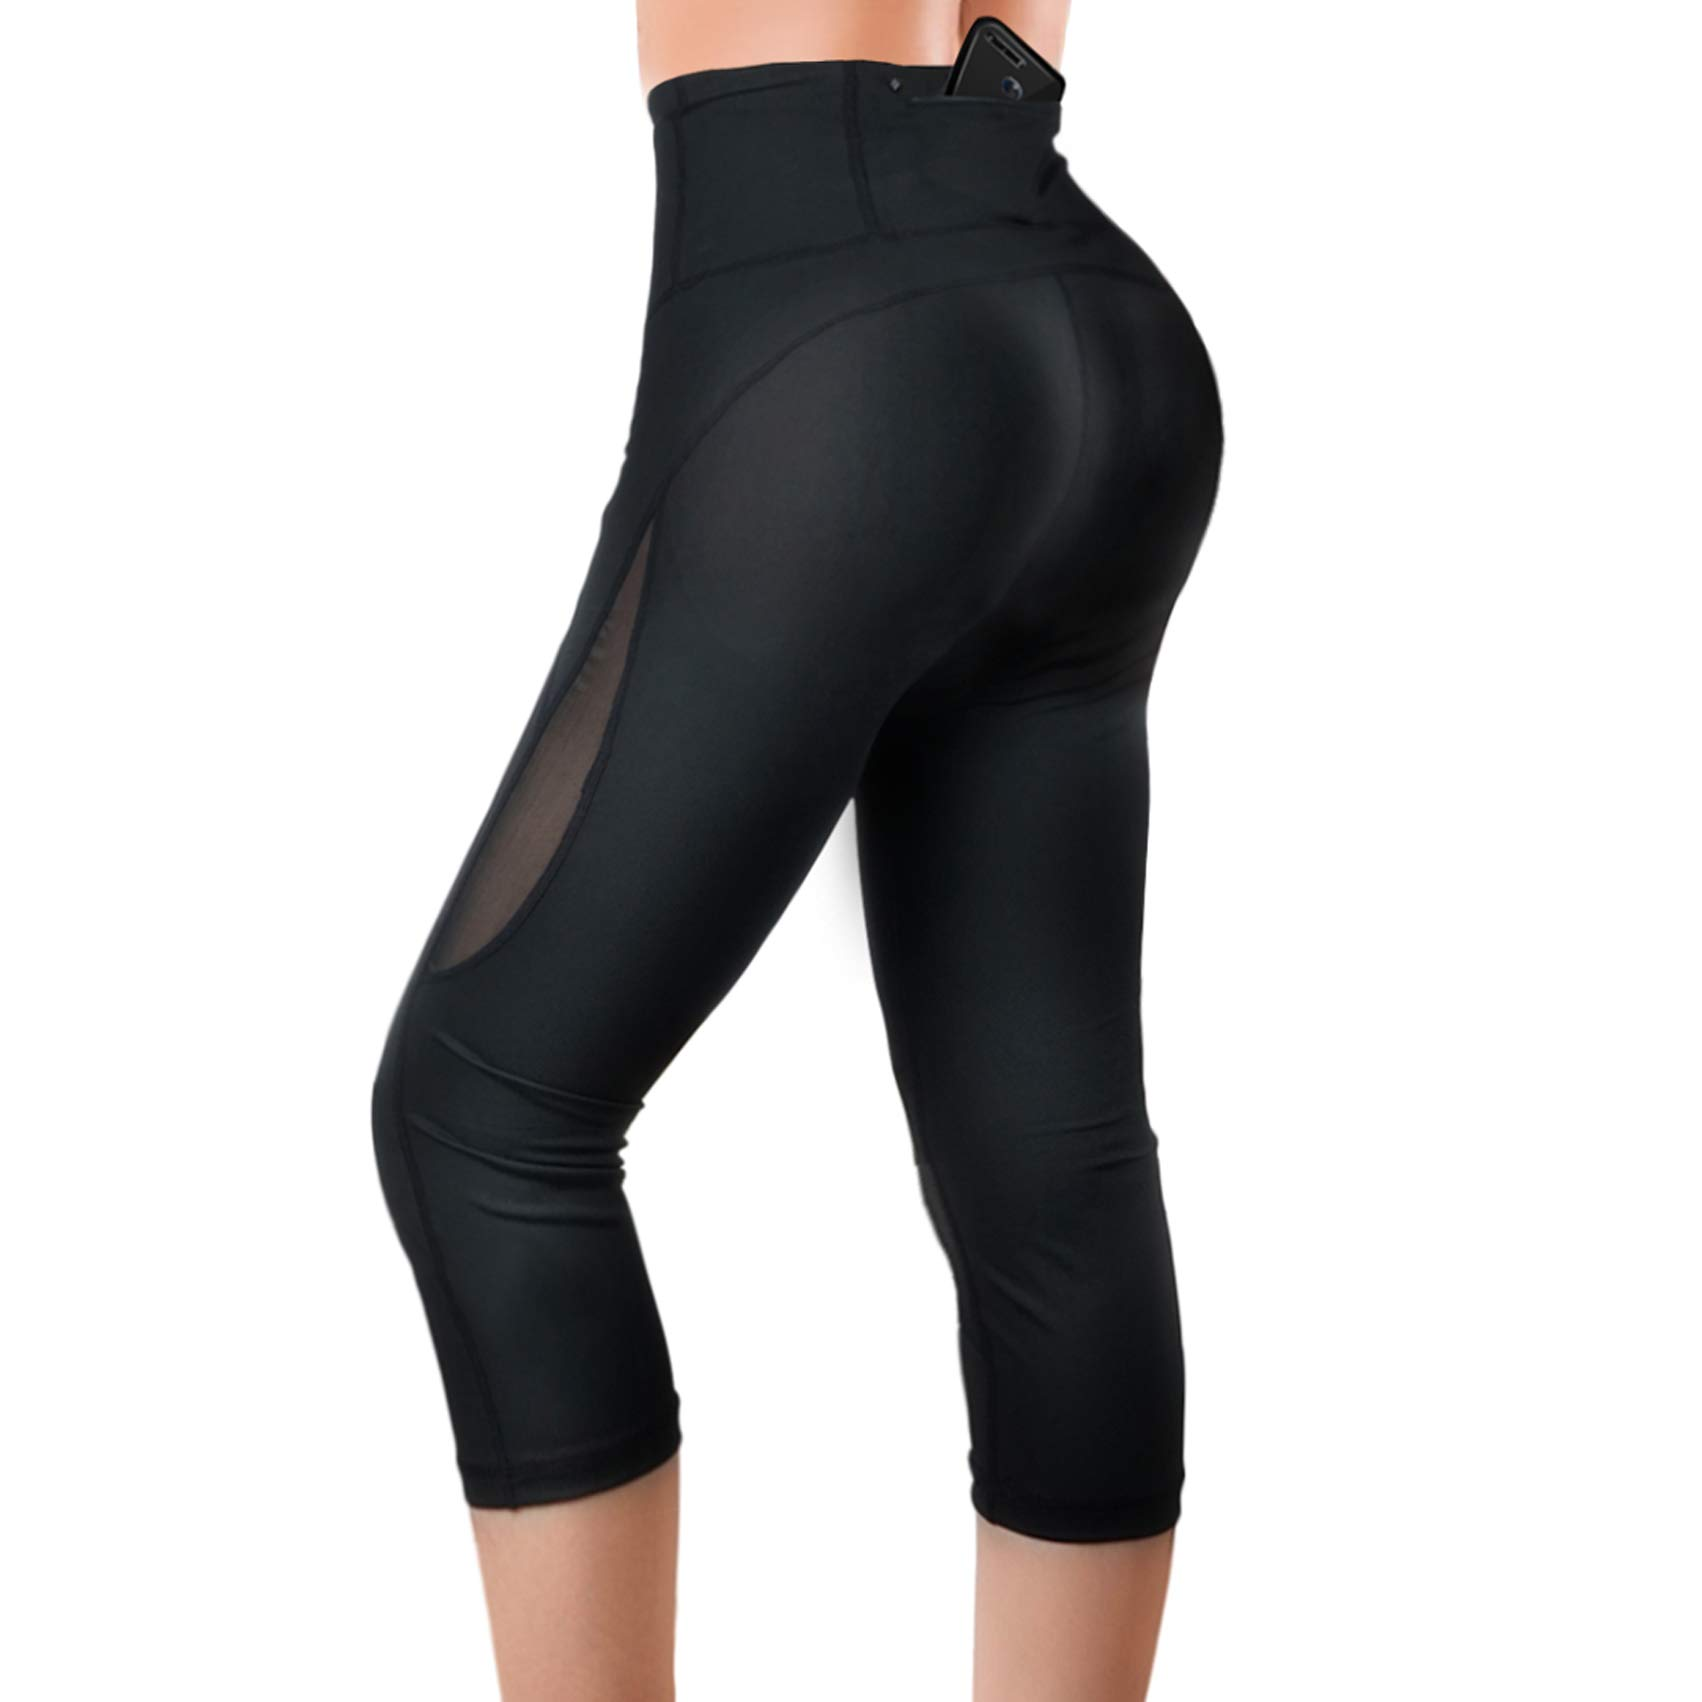 Rolewpy High Waist Out Pocket Capri Pants, Yoga Workout Leggings for Women Tummy Control, Ladies' Exercise Clothes Activewear